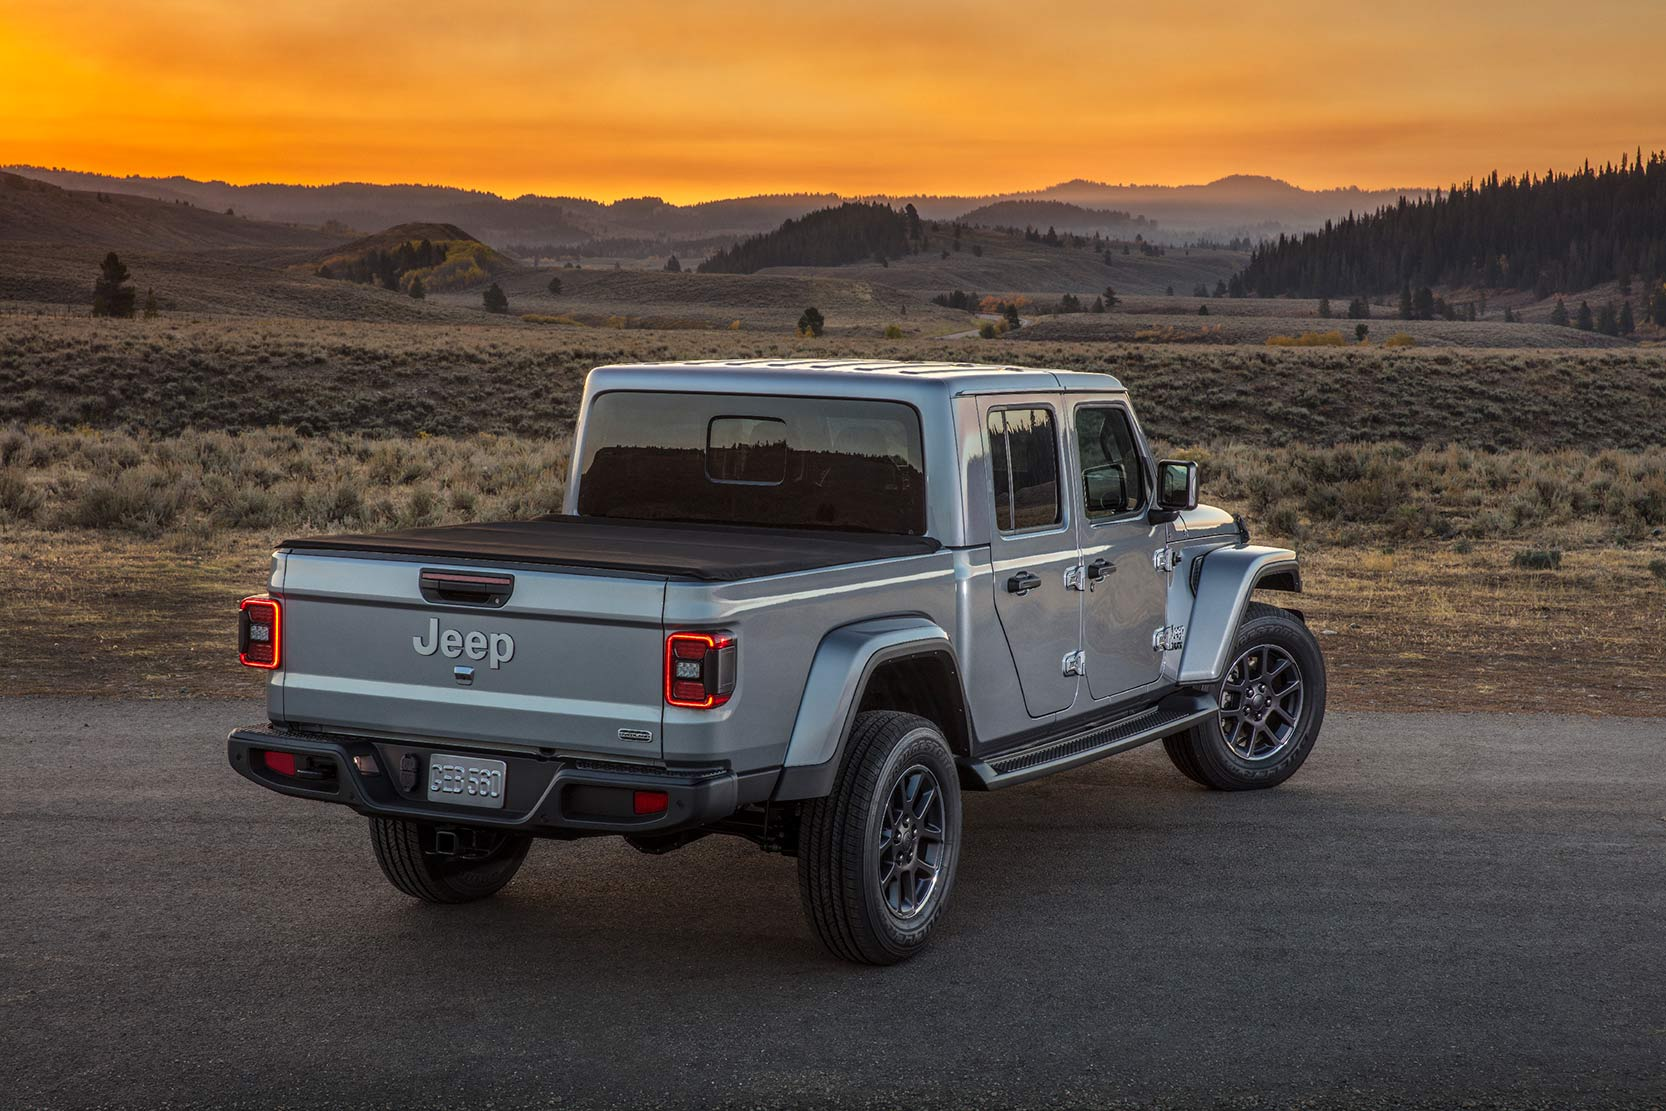 Exterieur_Jeep-Gladiator_82